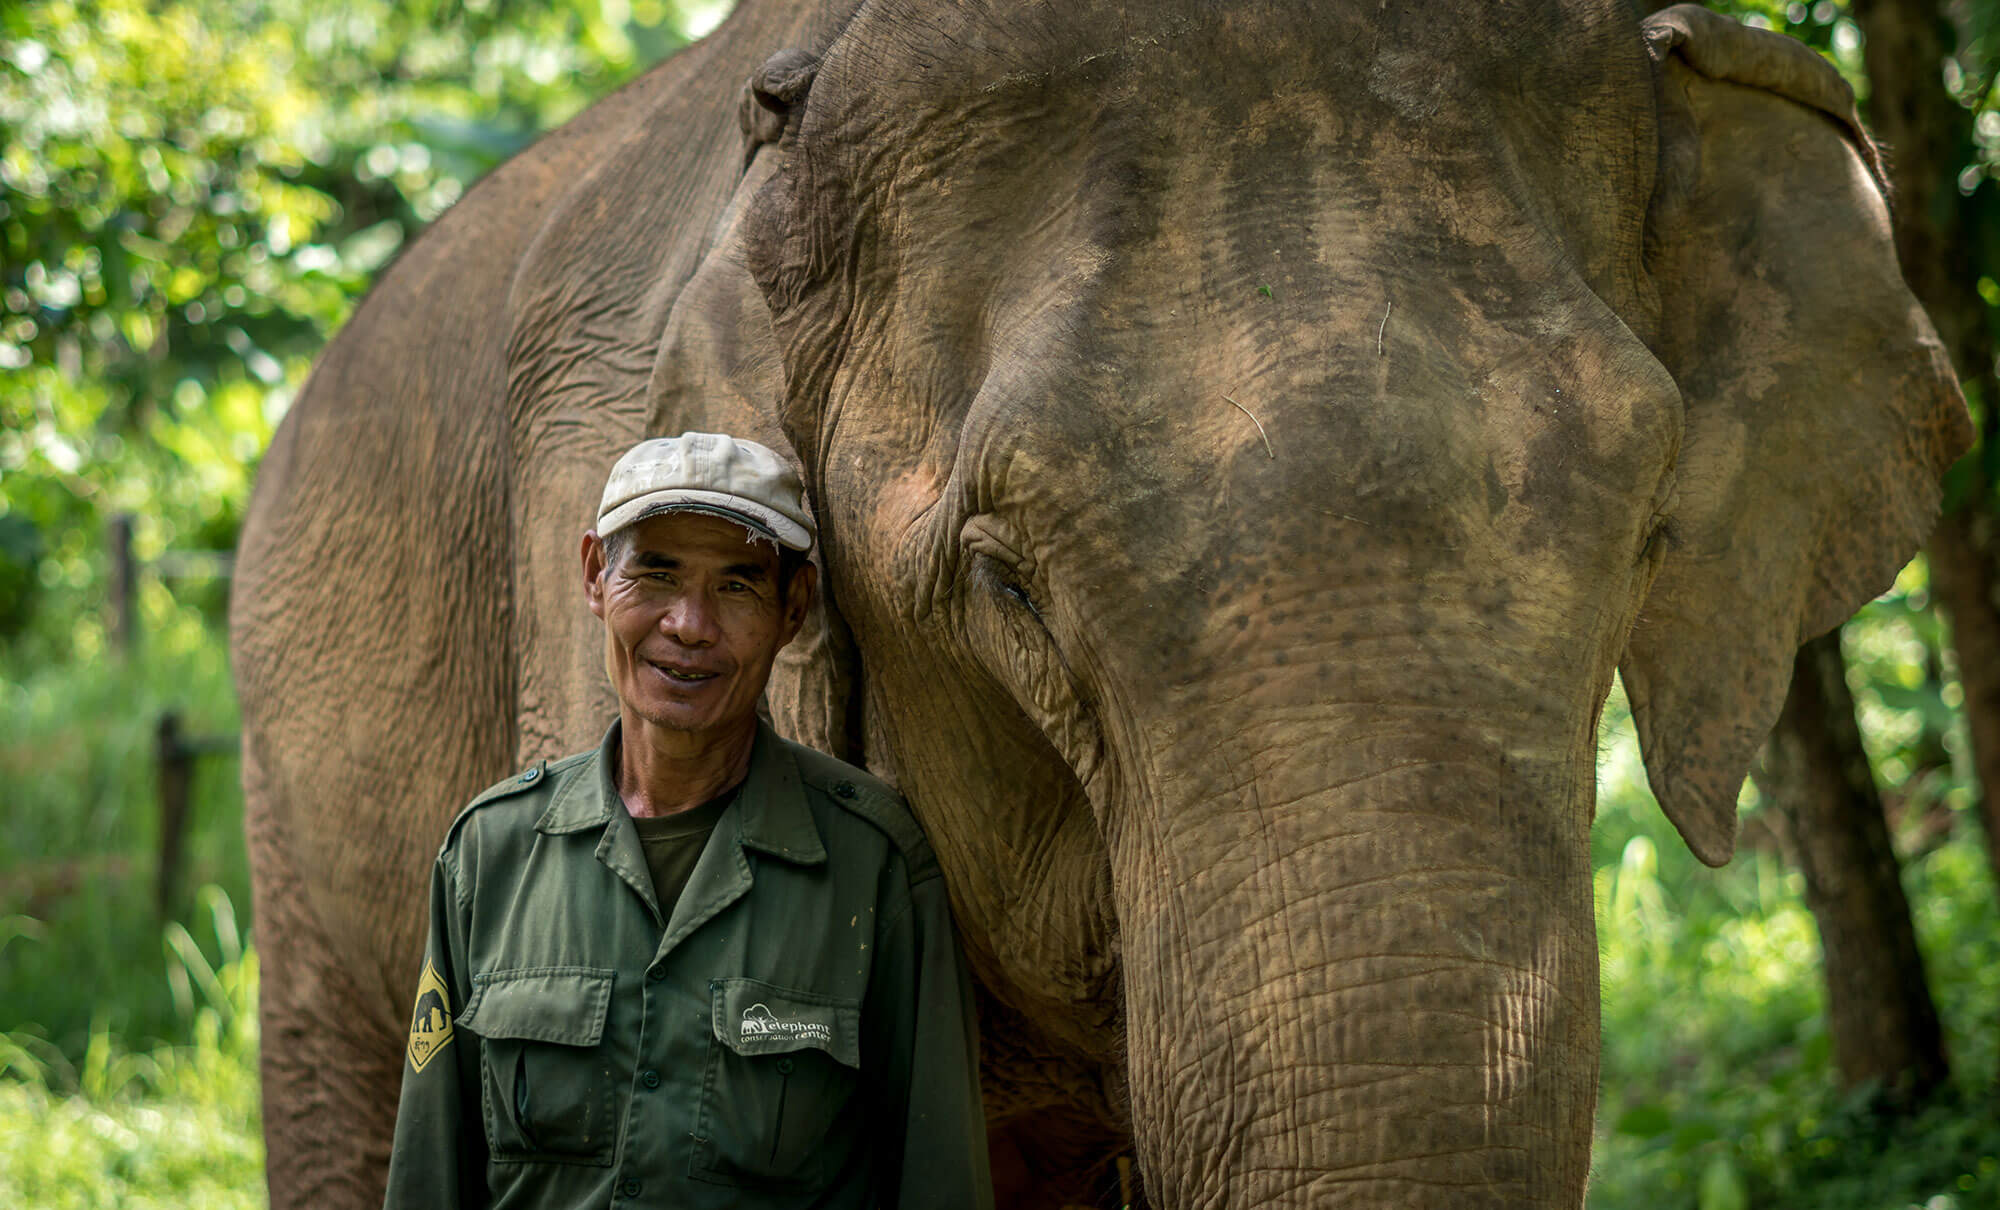 Elephant Conservation Center in Laos